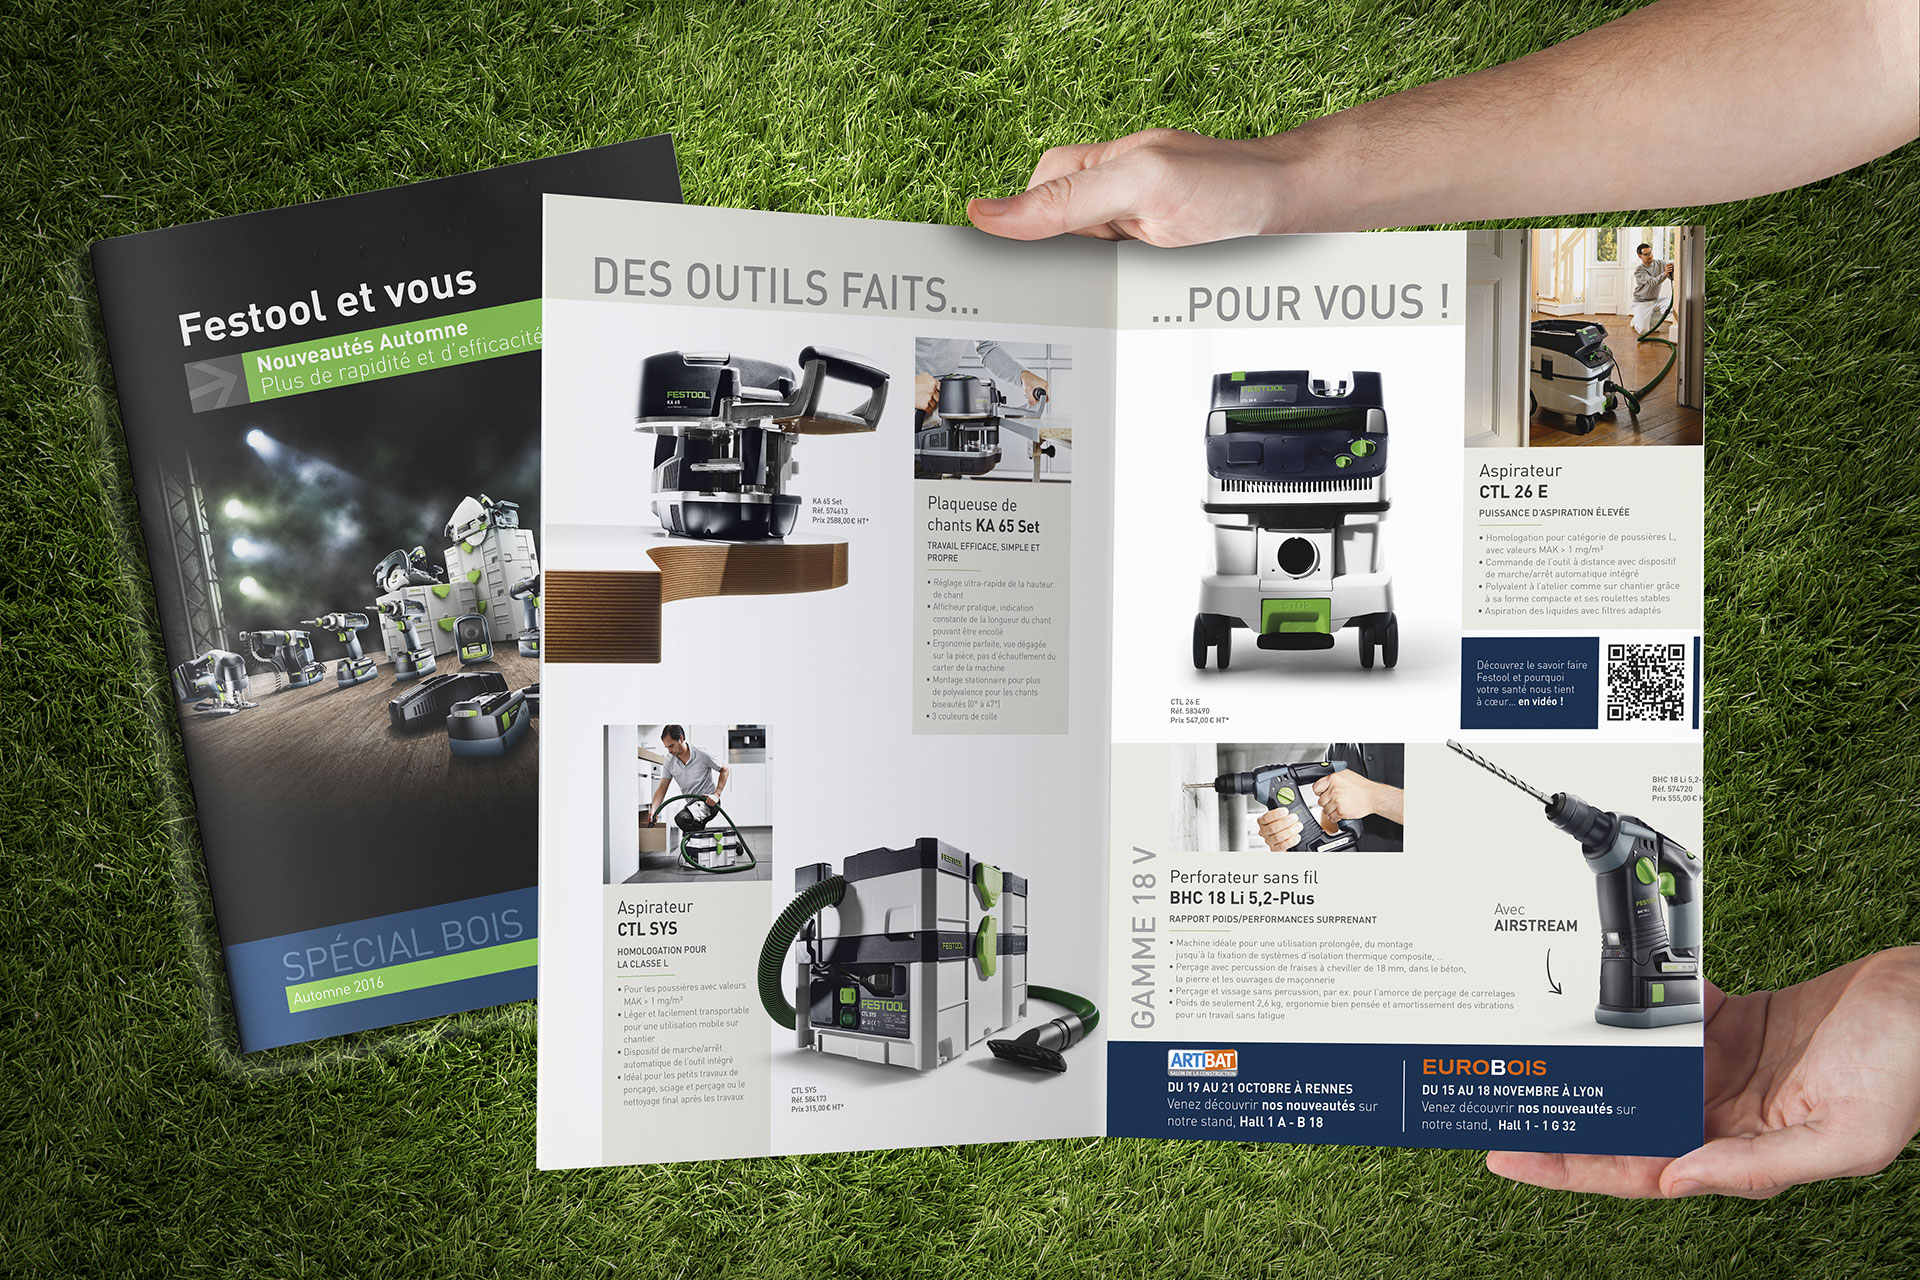 Outil Festool catalogue by CONVERGENCE